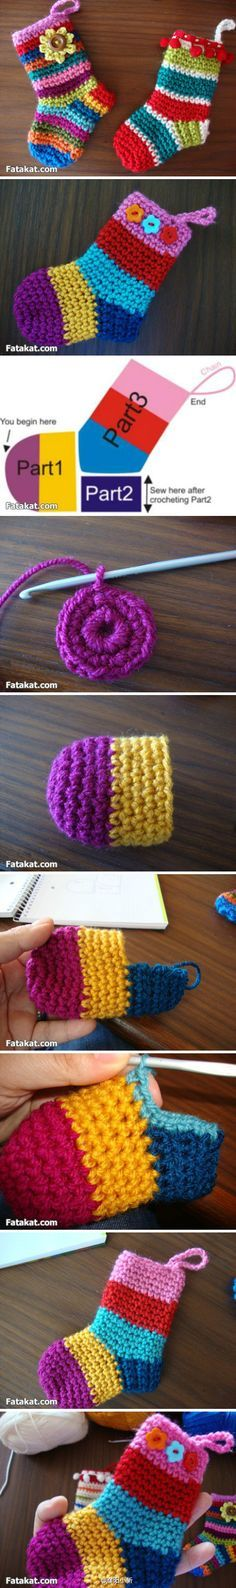 so cute. Tutorial de meia de croche                                                                                                                                                     More                                                                                                                                                                                 Más